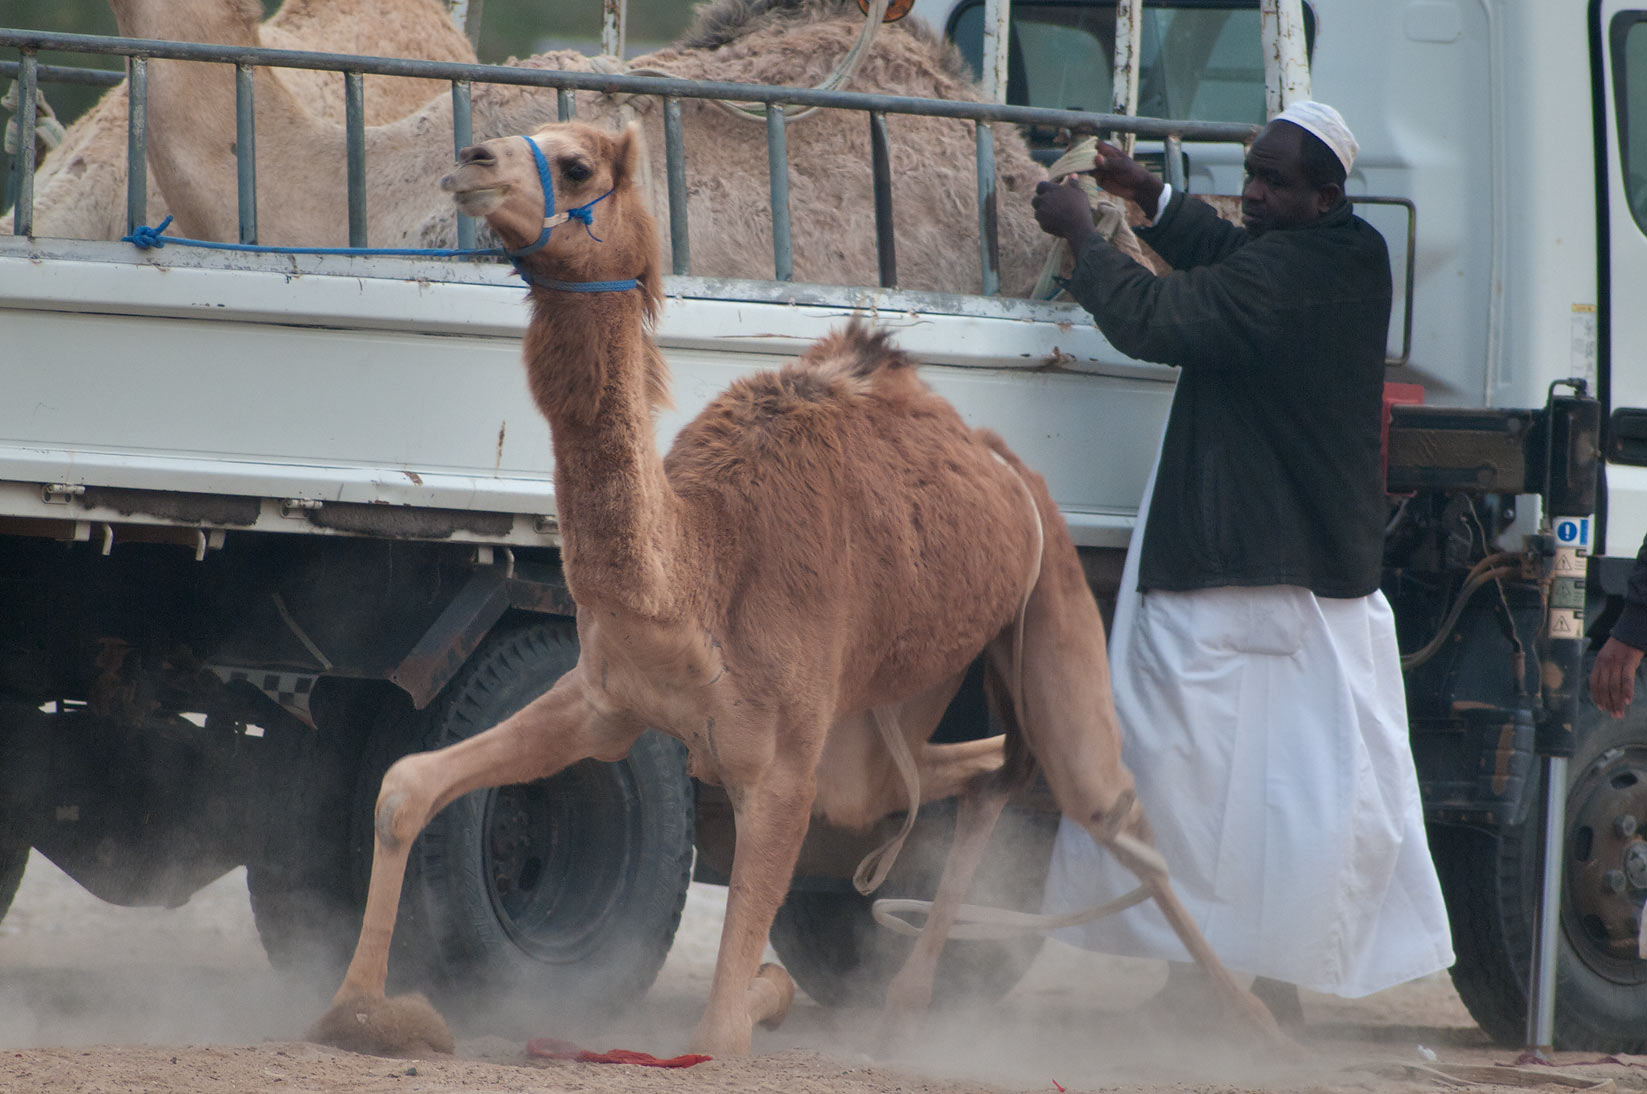 Loose camel unloaded from a truck in Camel Market, wholesale markets area. Doha, Qatar